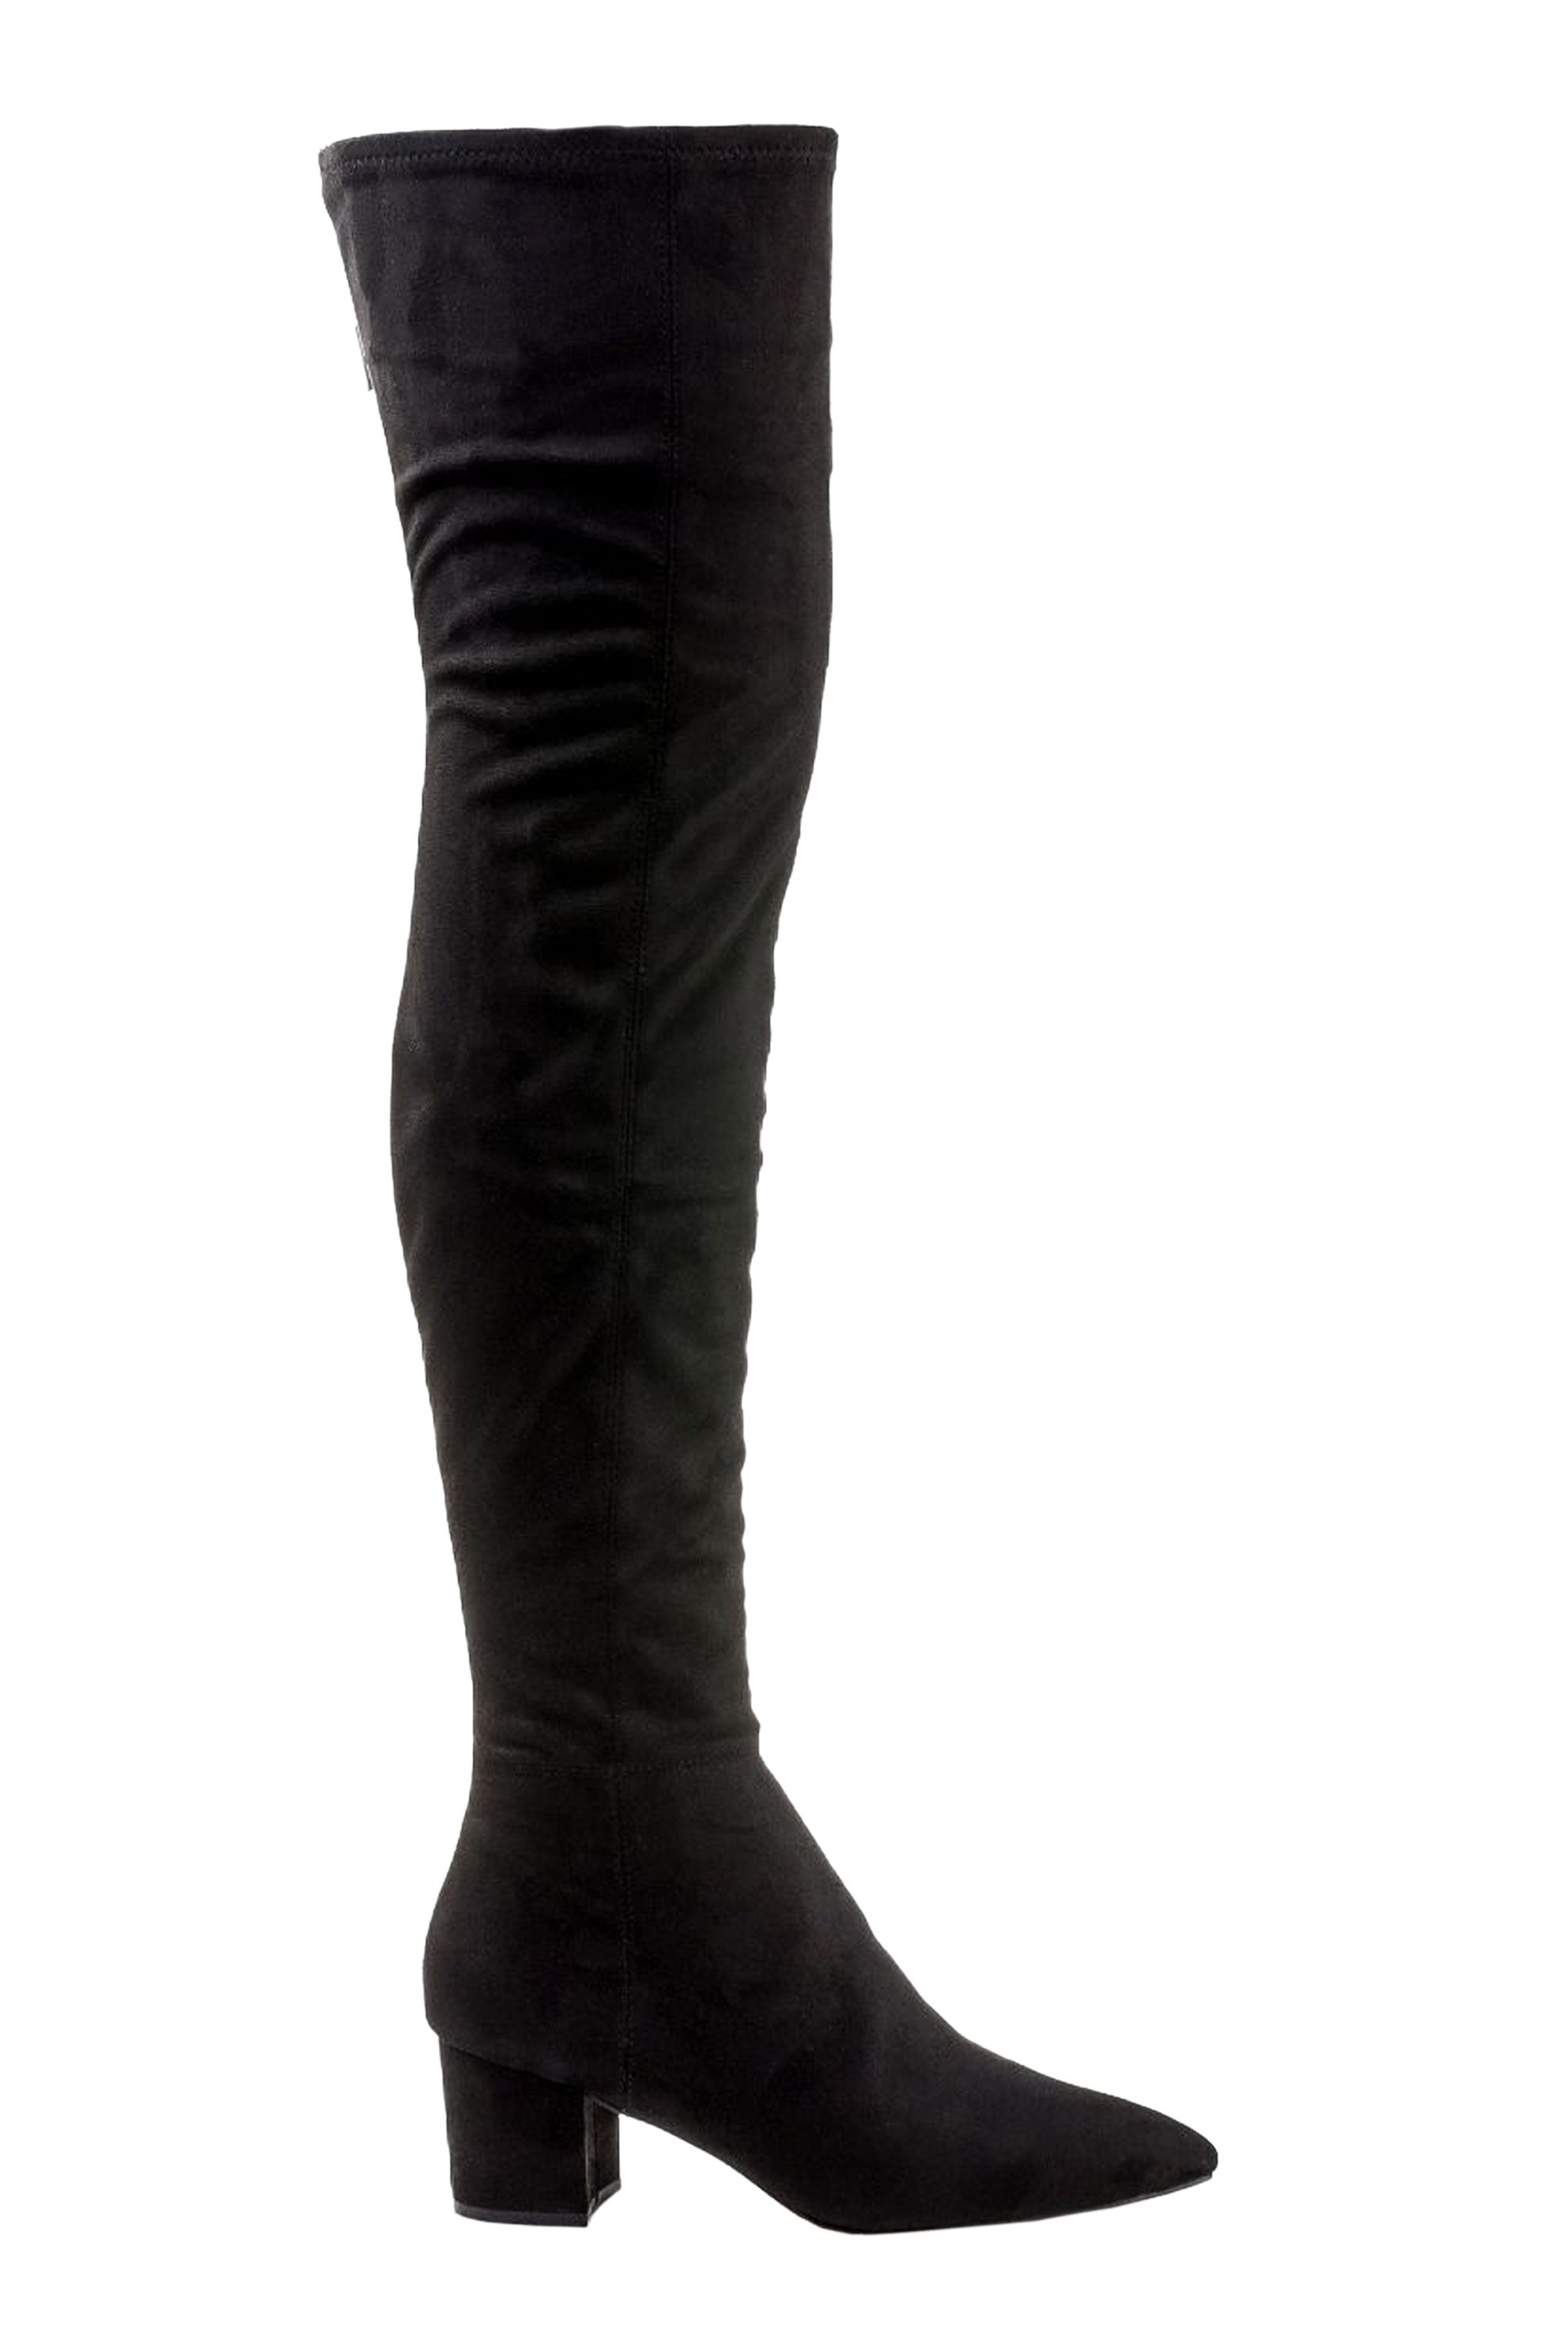 Steve Madden γυναικεία μποτά over the knee BOLTED – 218744-BOLTED – Μαύρο